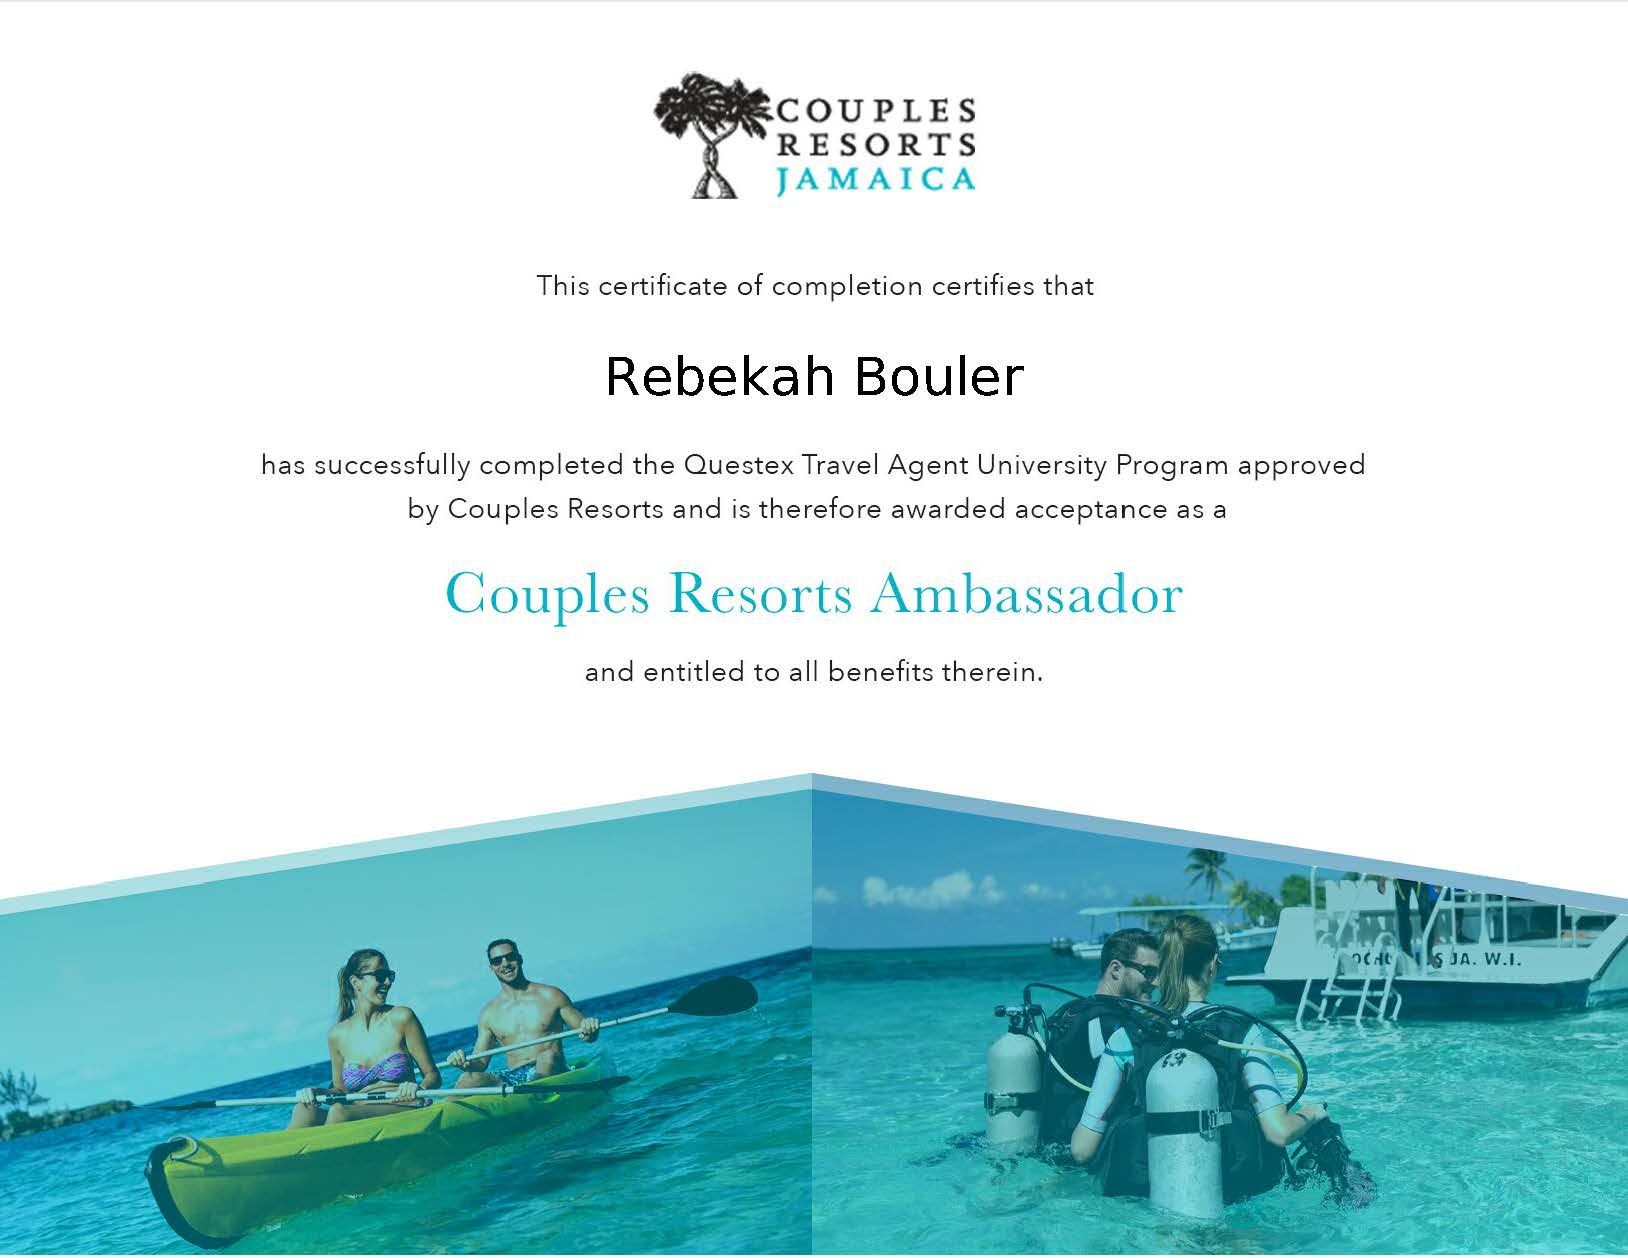 Couples Resorts certificate.jpg